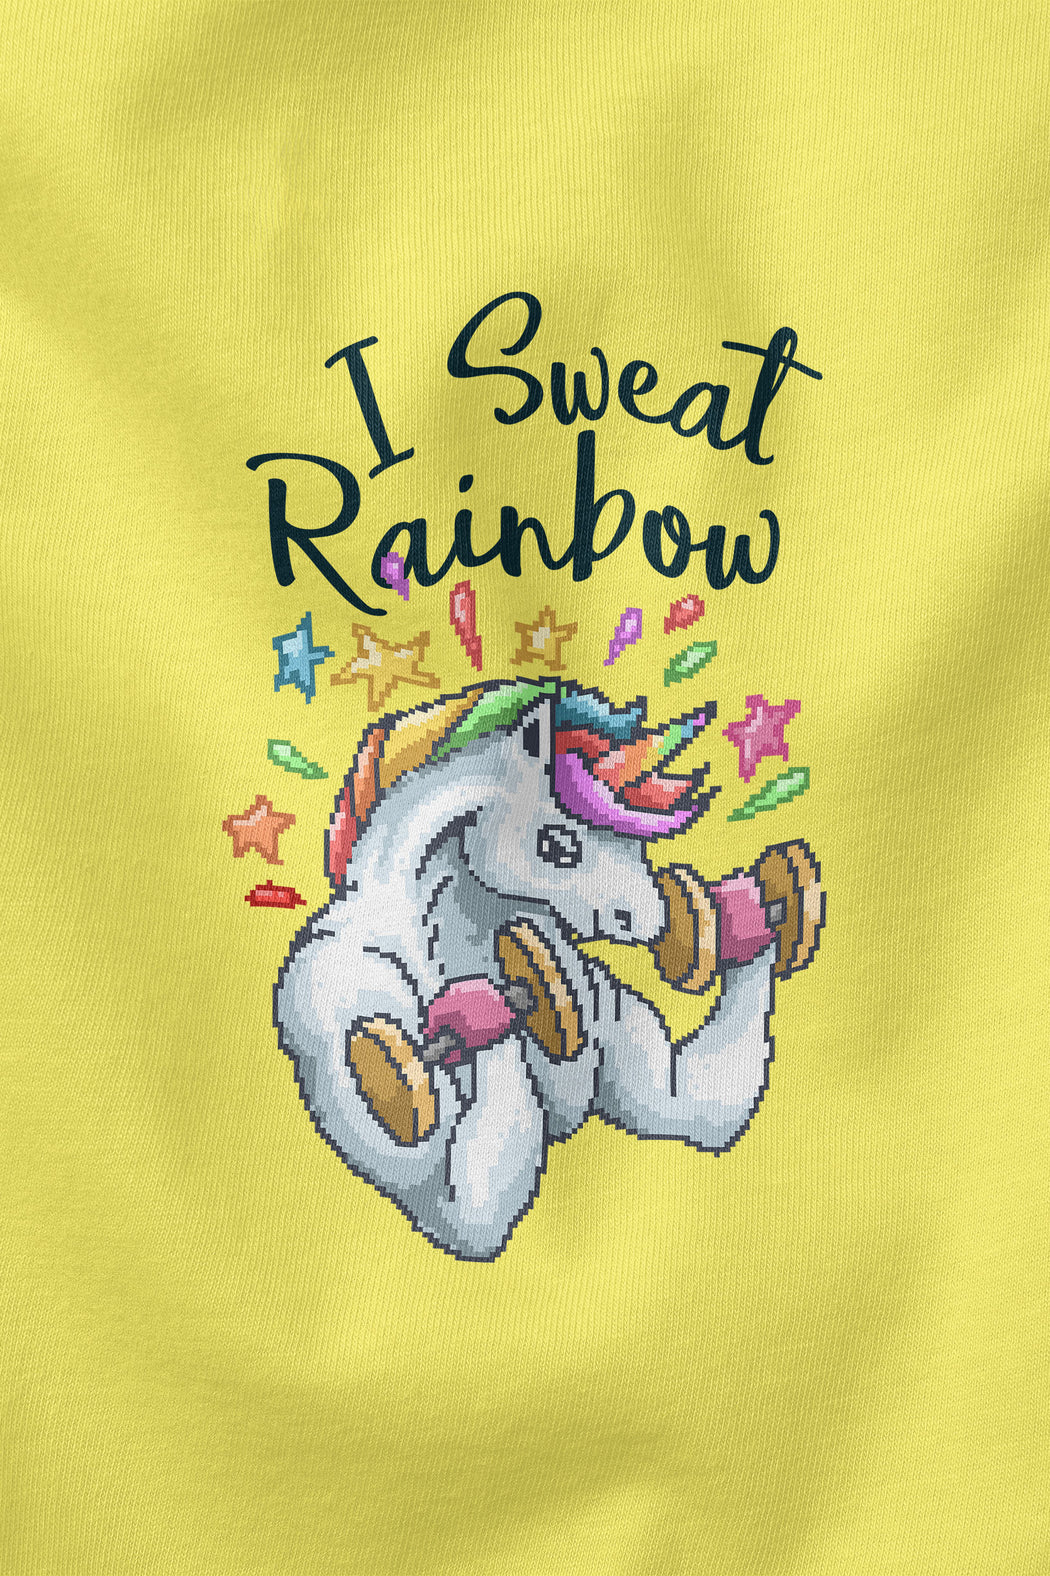 I Sweat Rainbow